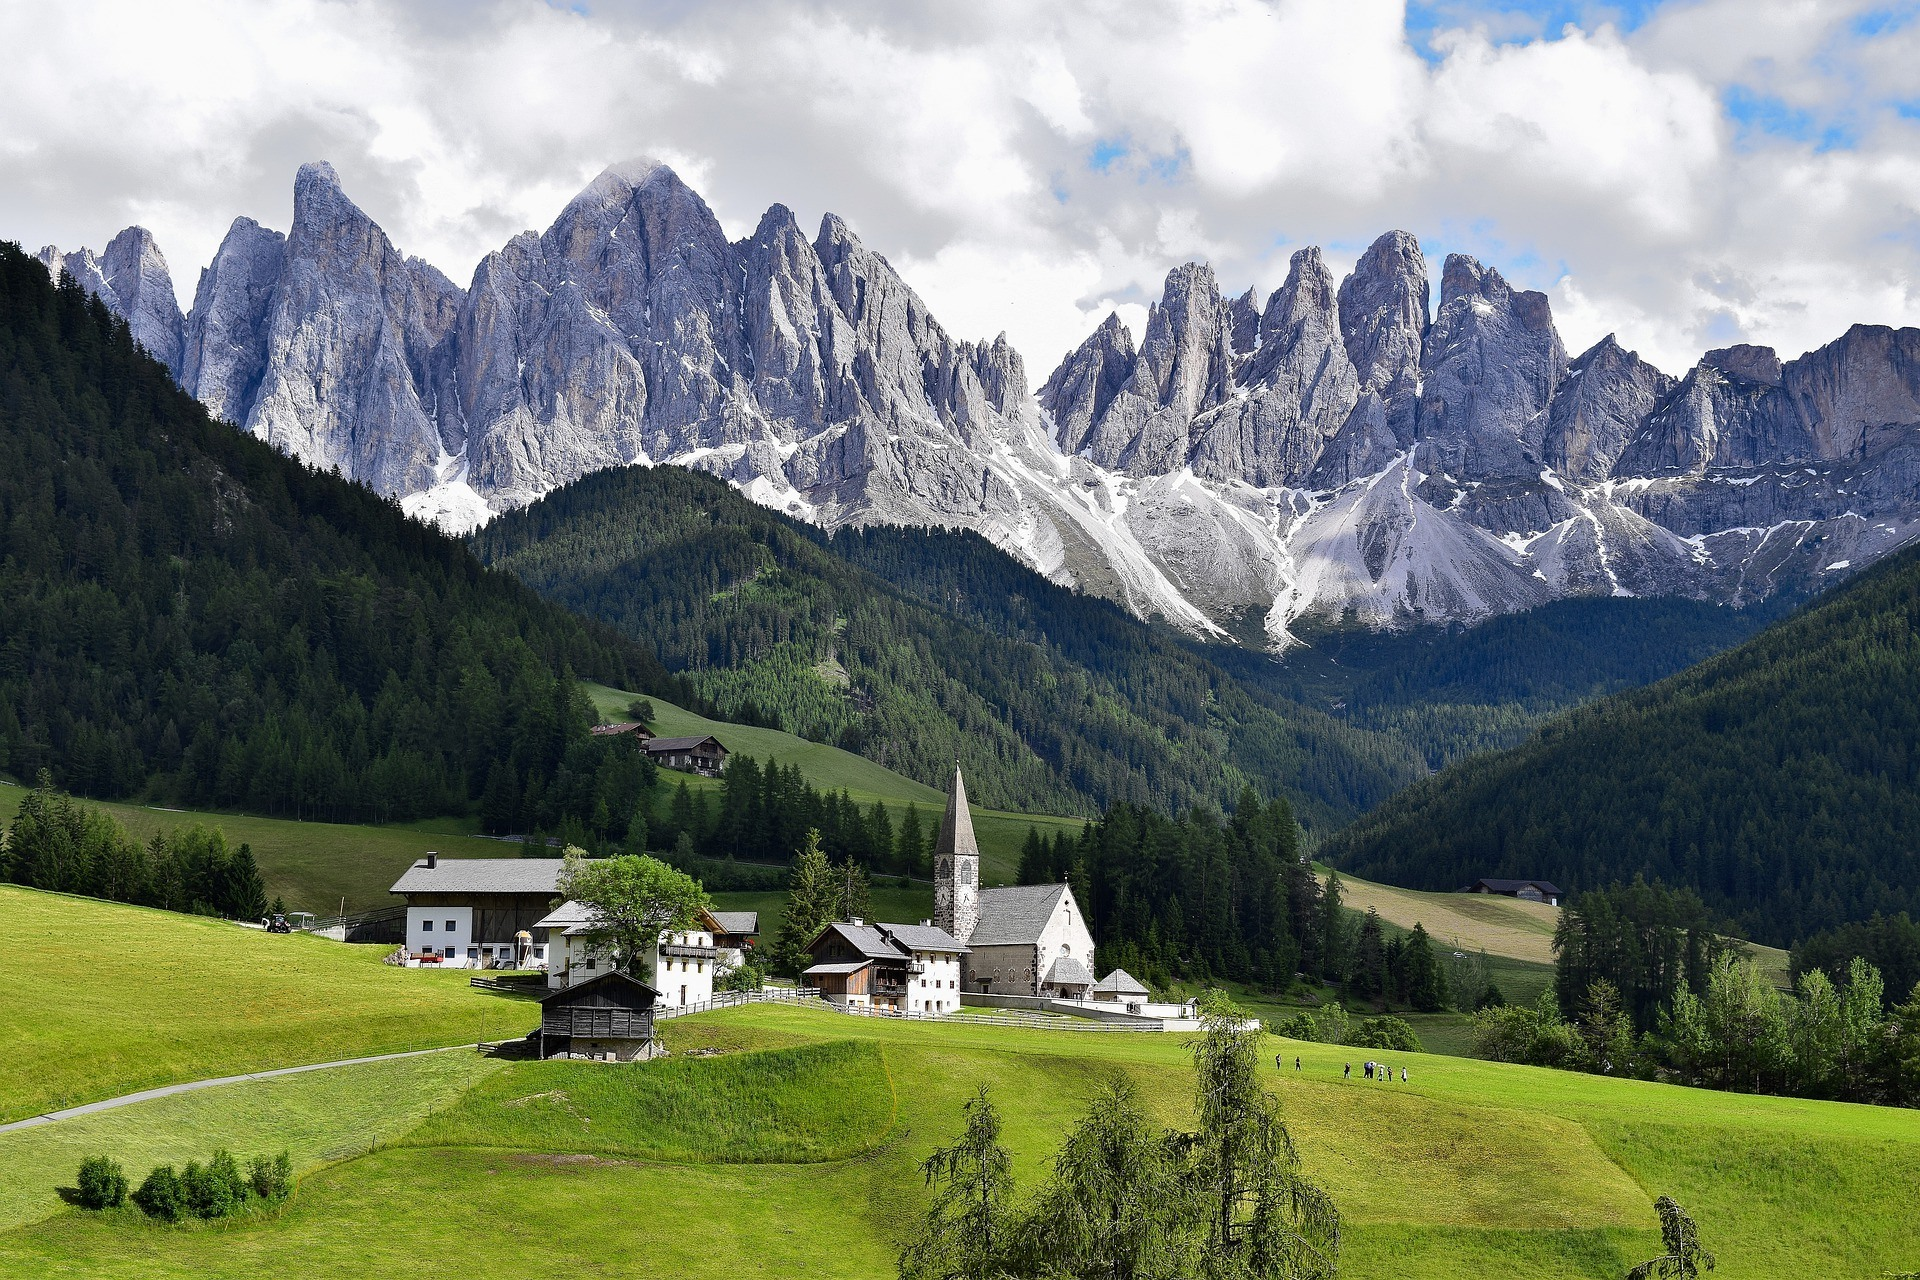 Where to Stay in Italy for Adventure The Dolomites